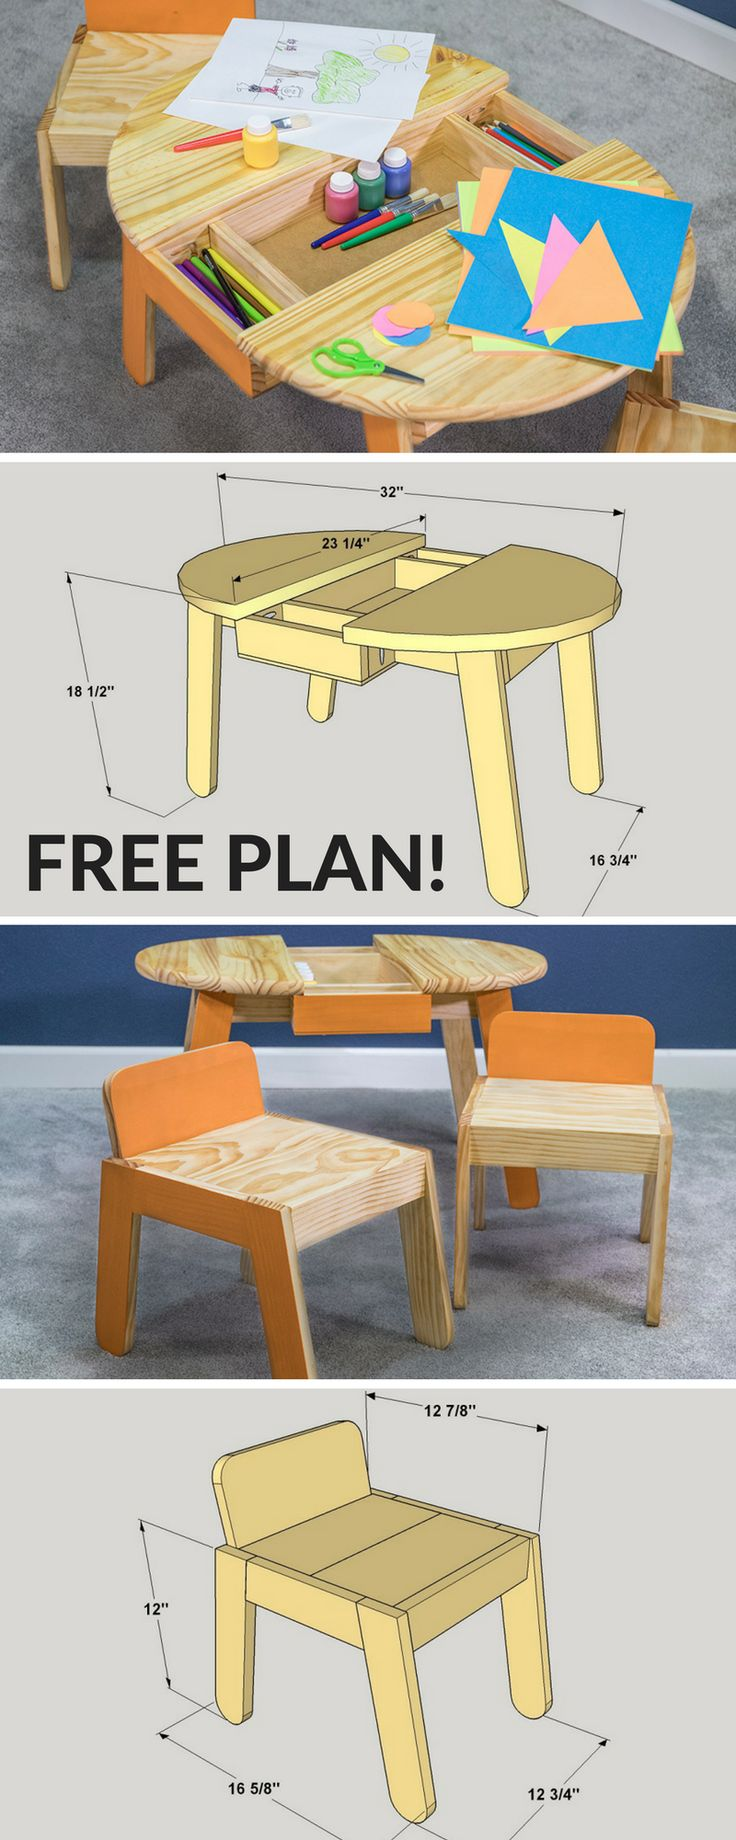 Free Project Plan: This pint-sized art table will help bring out the artist in any child. It features work and storage space, plus a pair of chairs that are sized just right for small kids. Using a pre-made round top keeps the table simple, while a few angles and gentle curves add an extra touch of style. Complete how-to and step-by-step instructions on buildsomething.com!